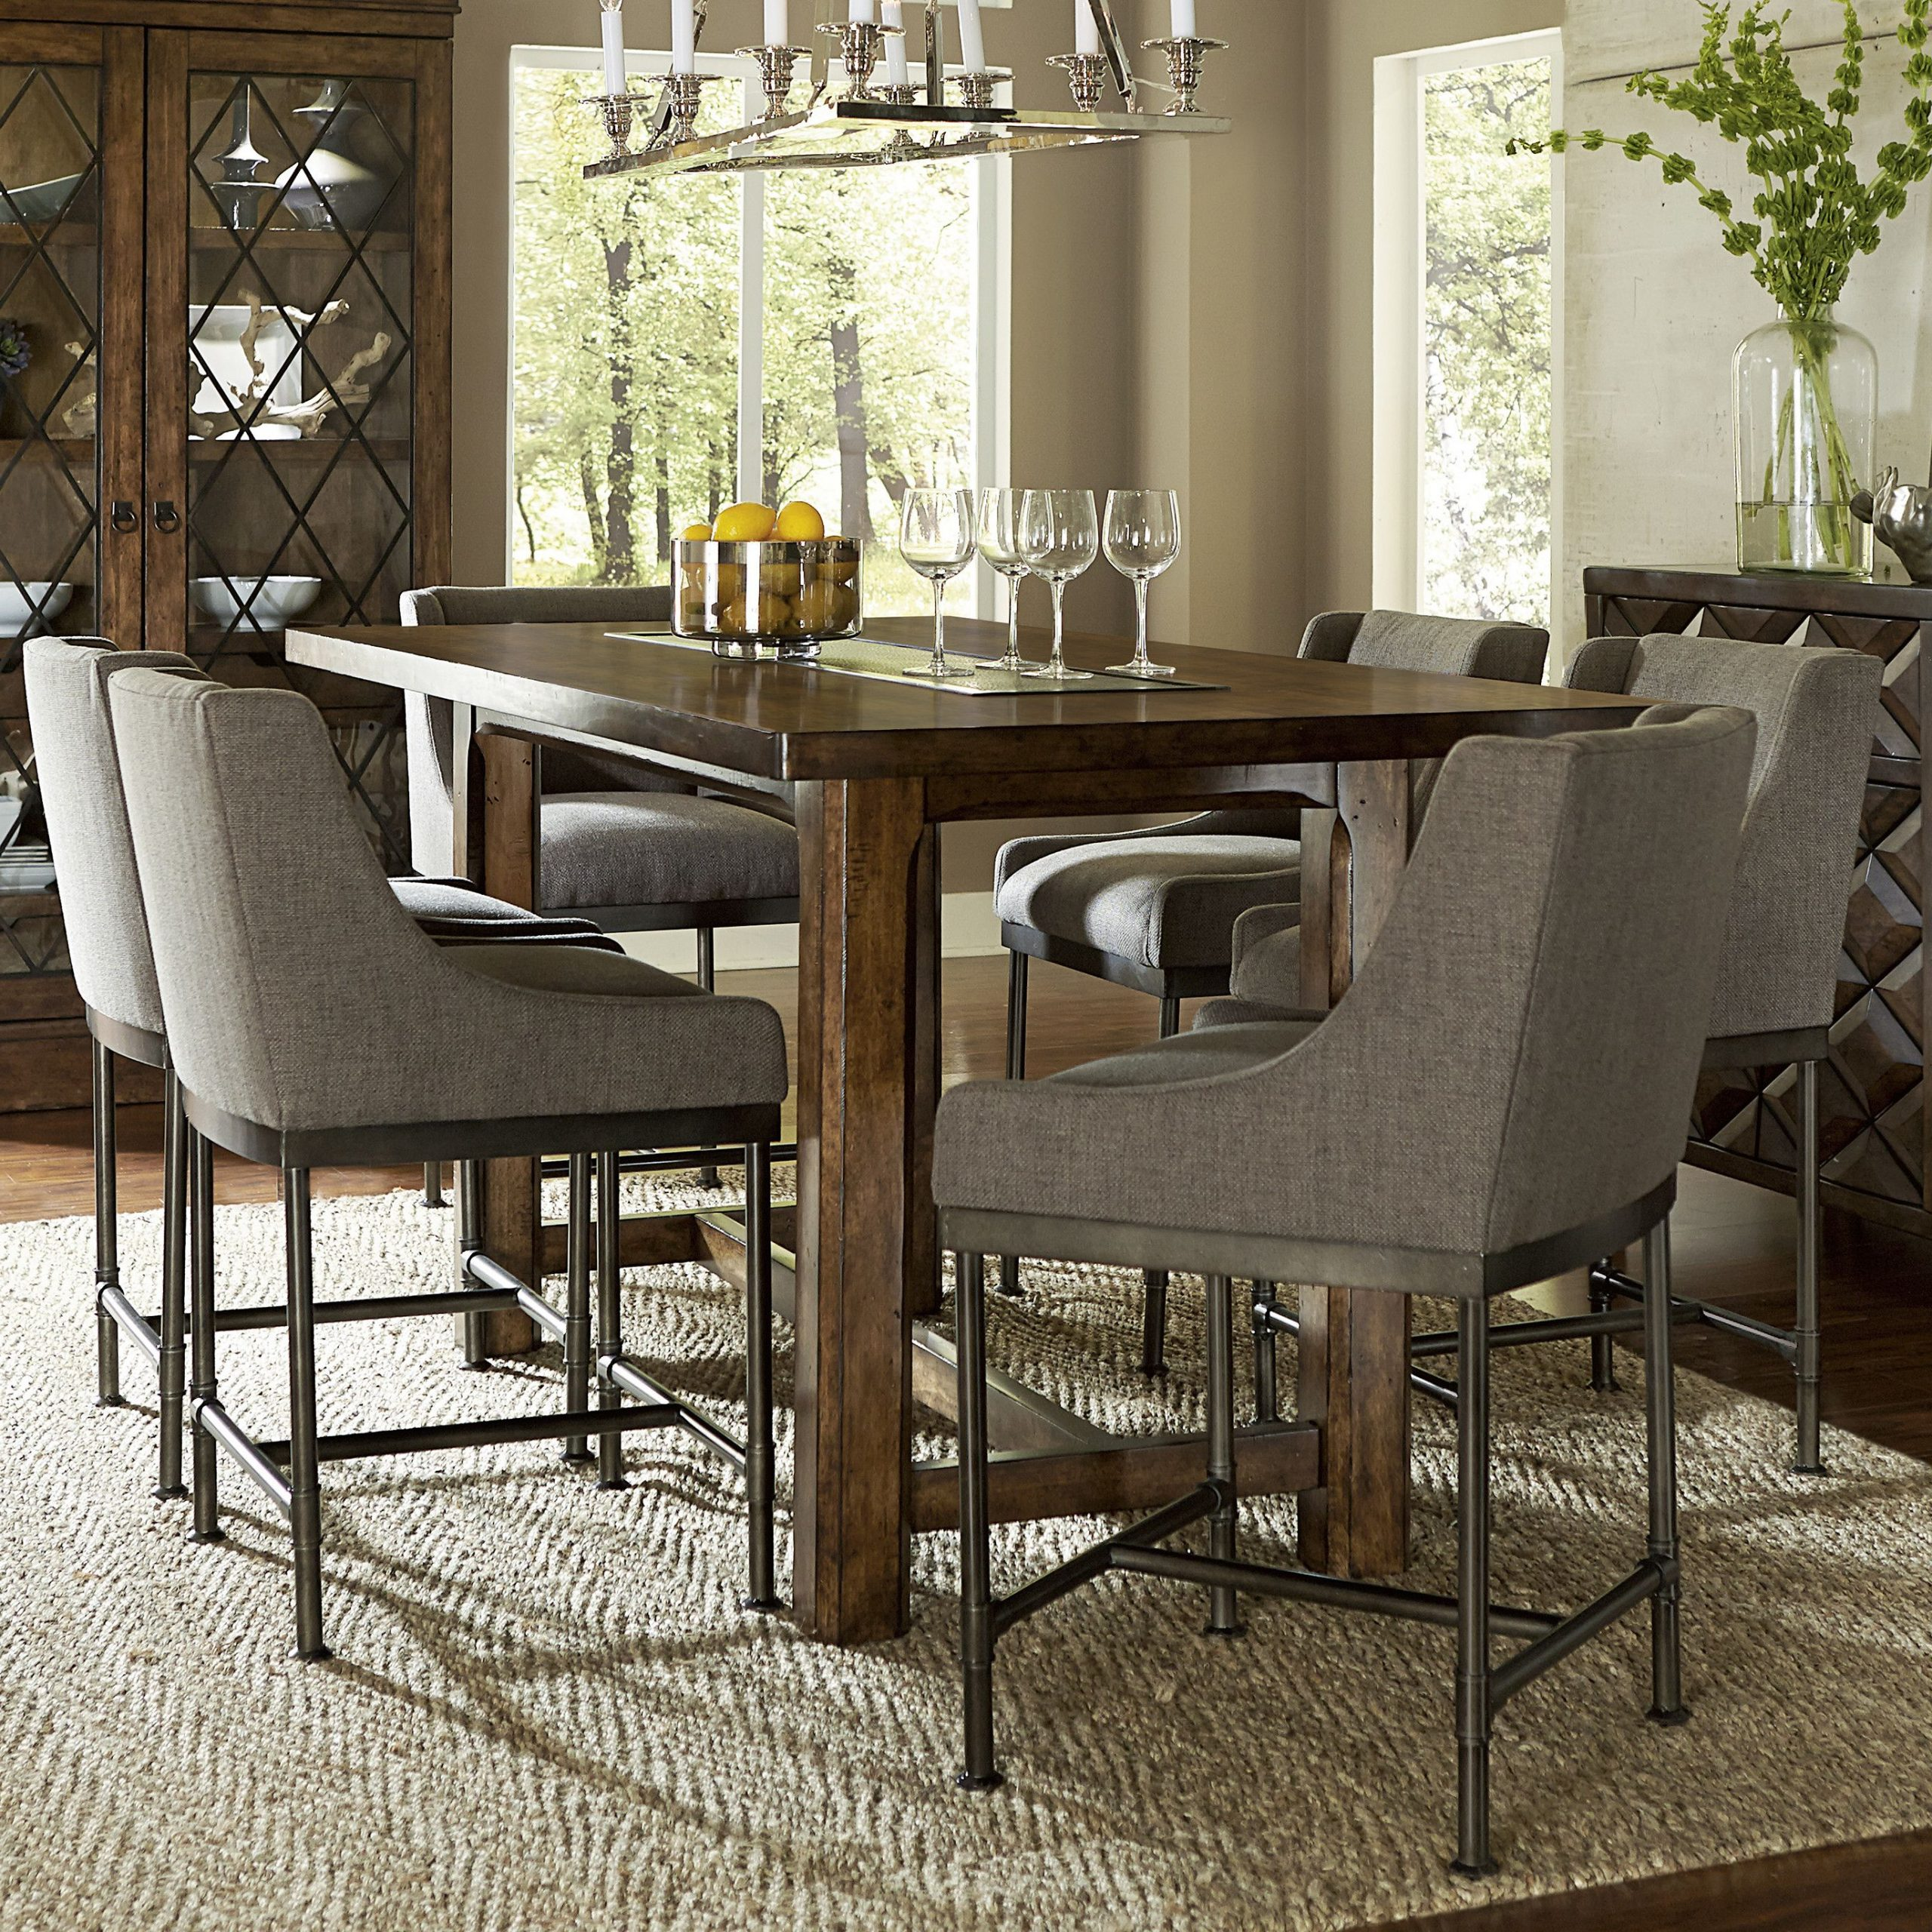 Avondale Counter Height Dining Tables For Most Recently Released Loon Peak Segula Counter Height Dining Table (View 4 of 25)